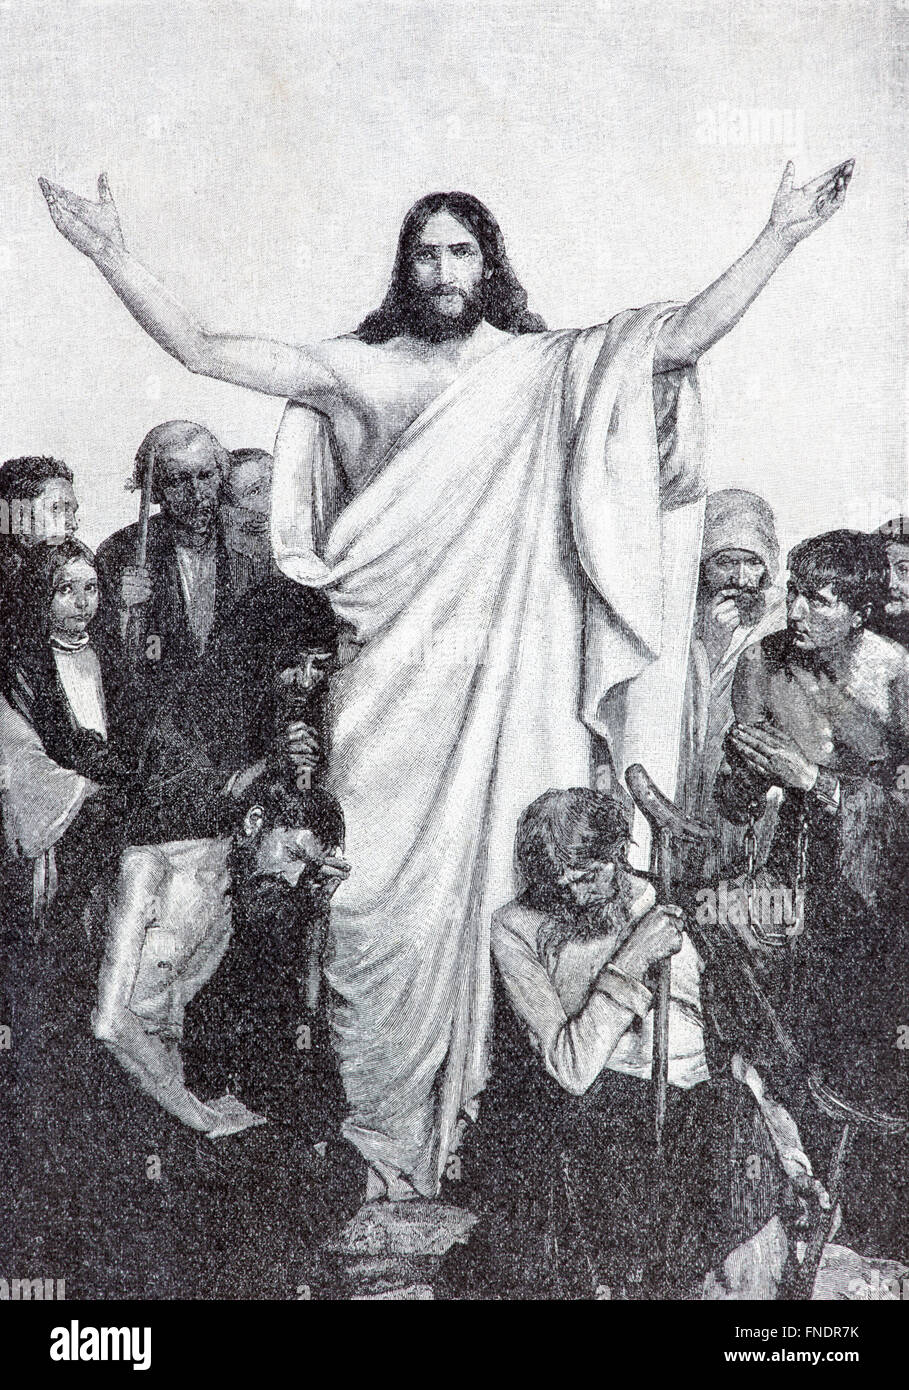 SEBECHLEBY, SLOVAKIA - JULY 27, 2015:  Jesus healing among the lames and badlys  lithography by unknown artist, - Stock Image